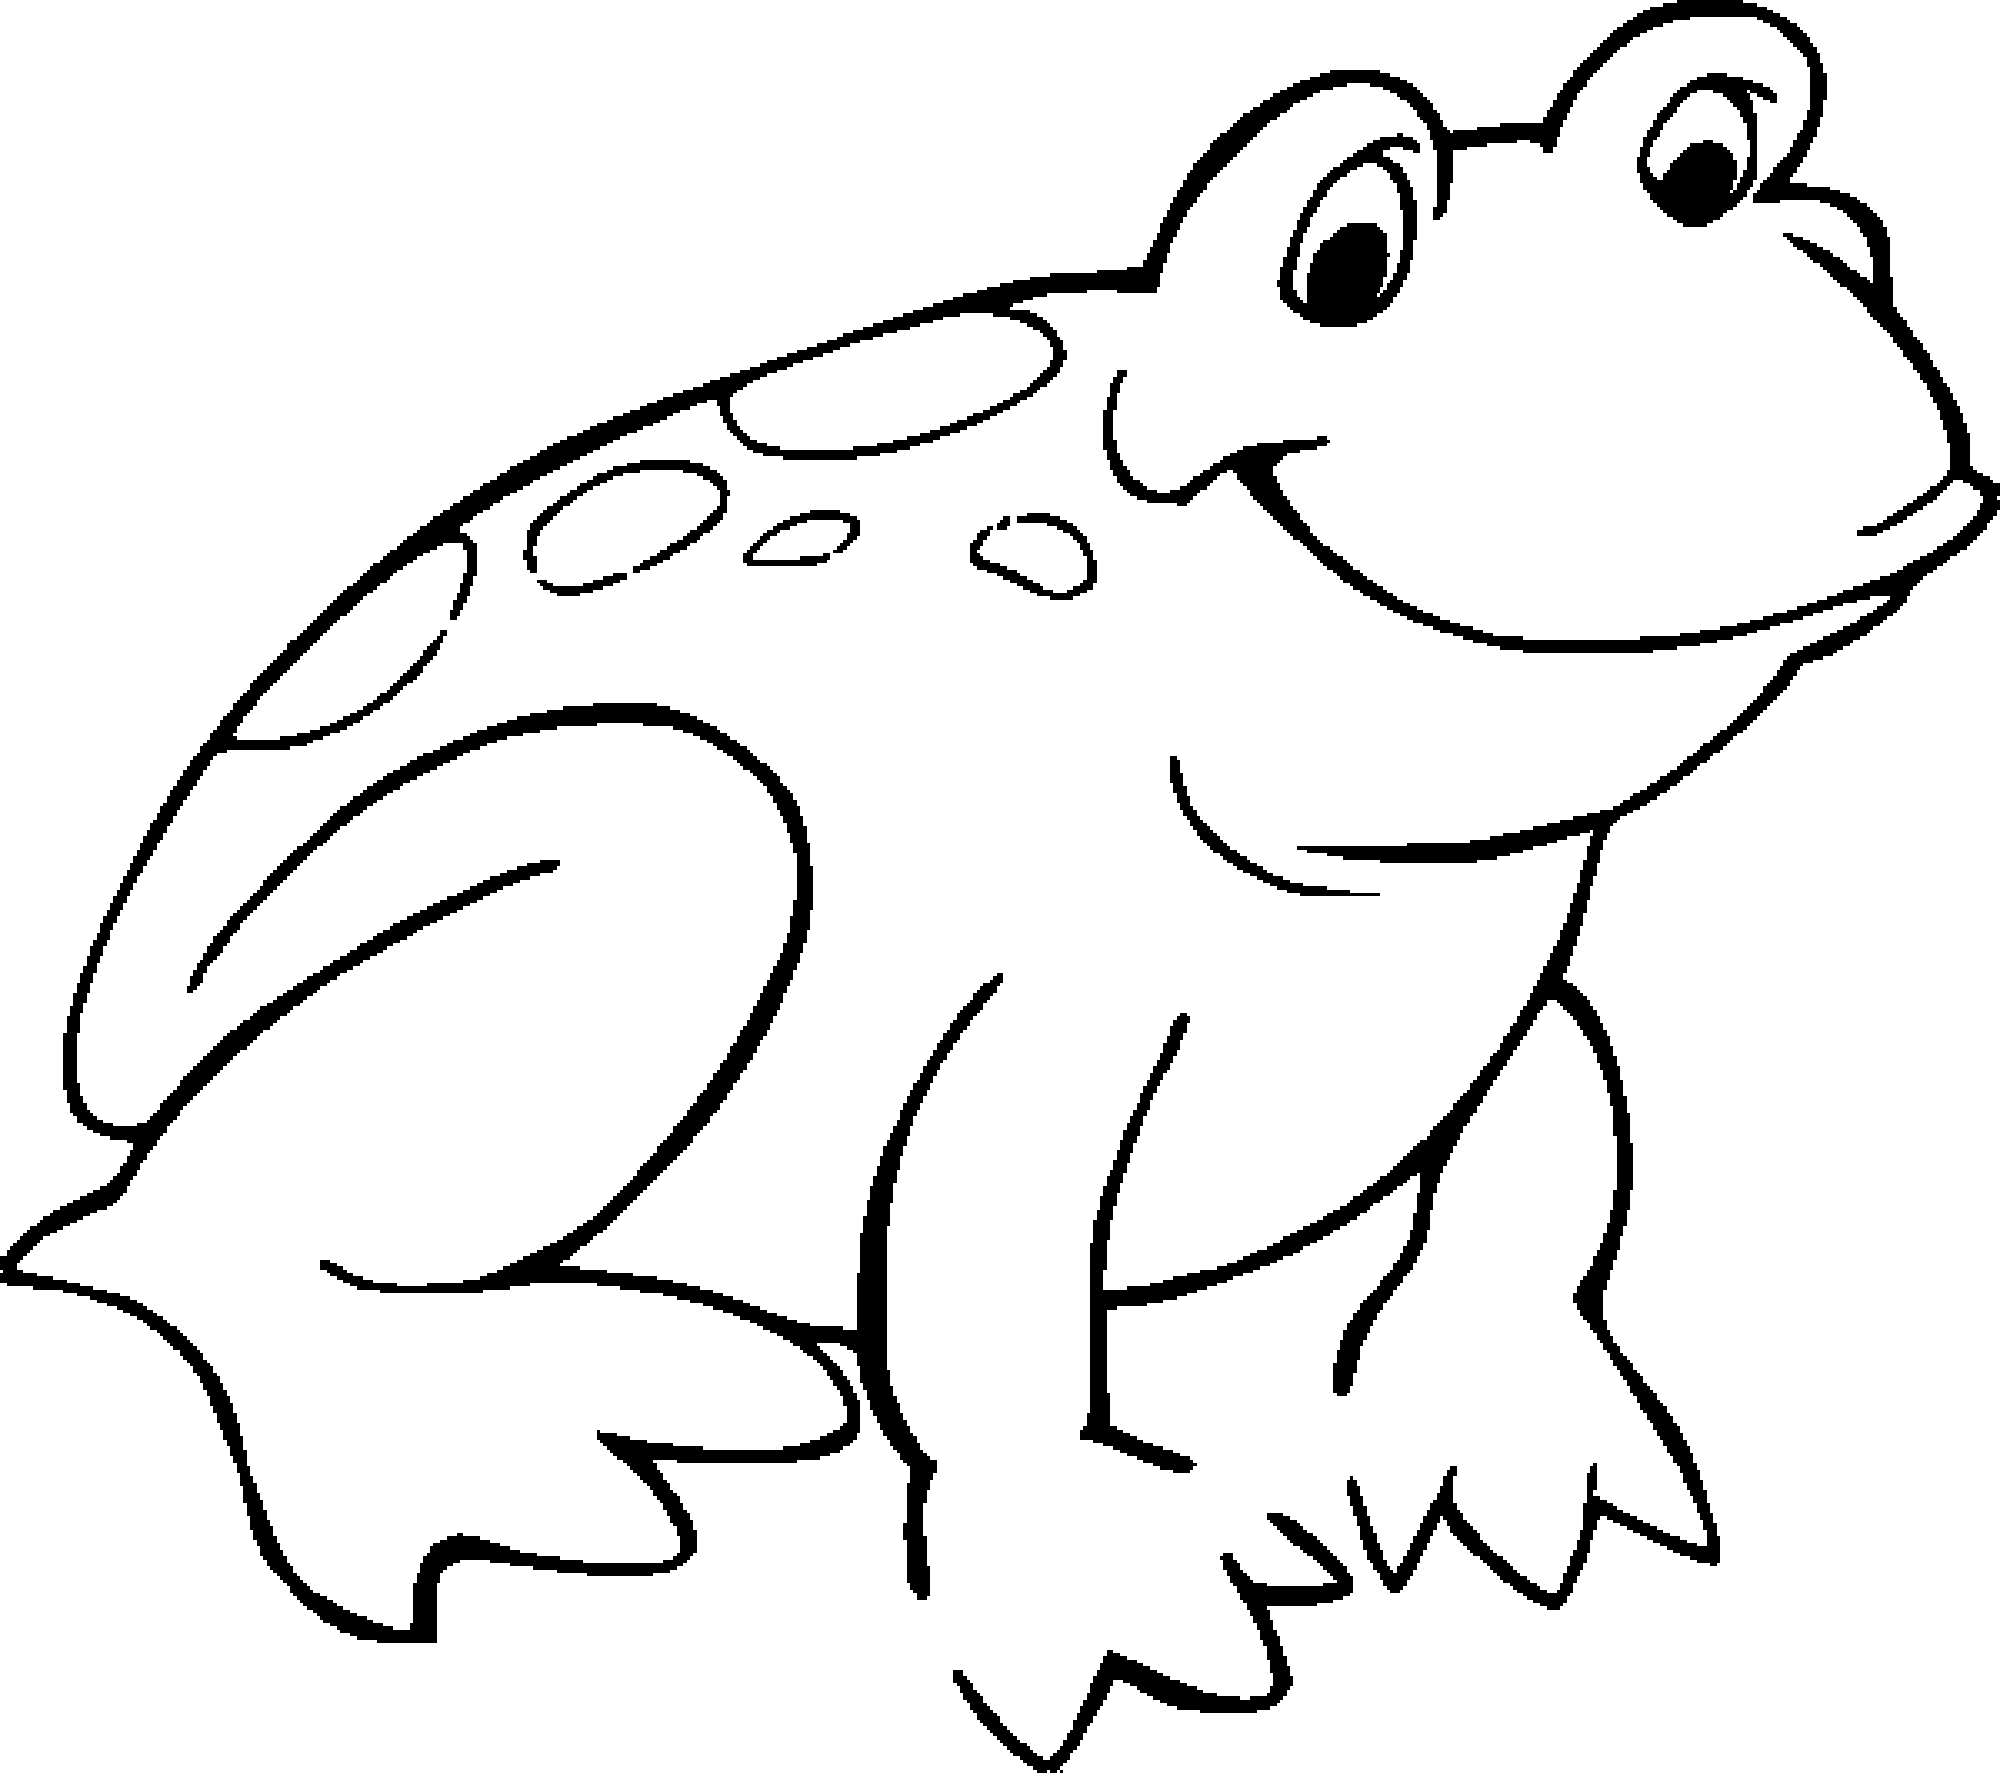 coloring image of a frog free printable frog coloring pages for kids cool2bkids of image frog a coloring